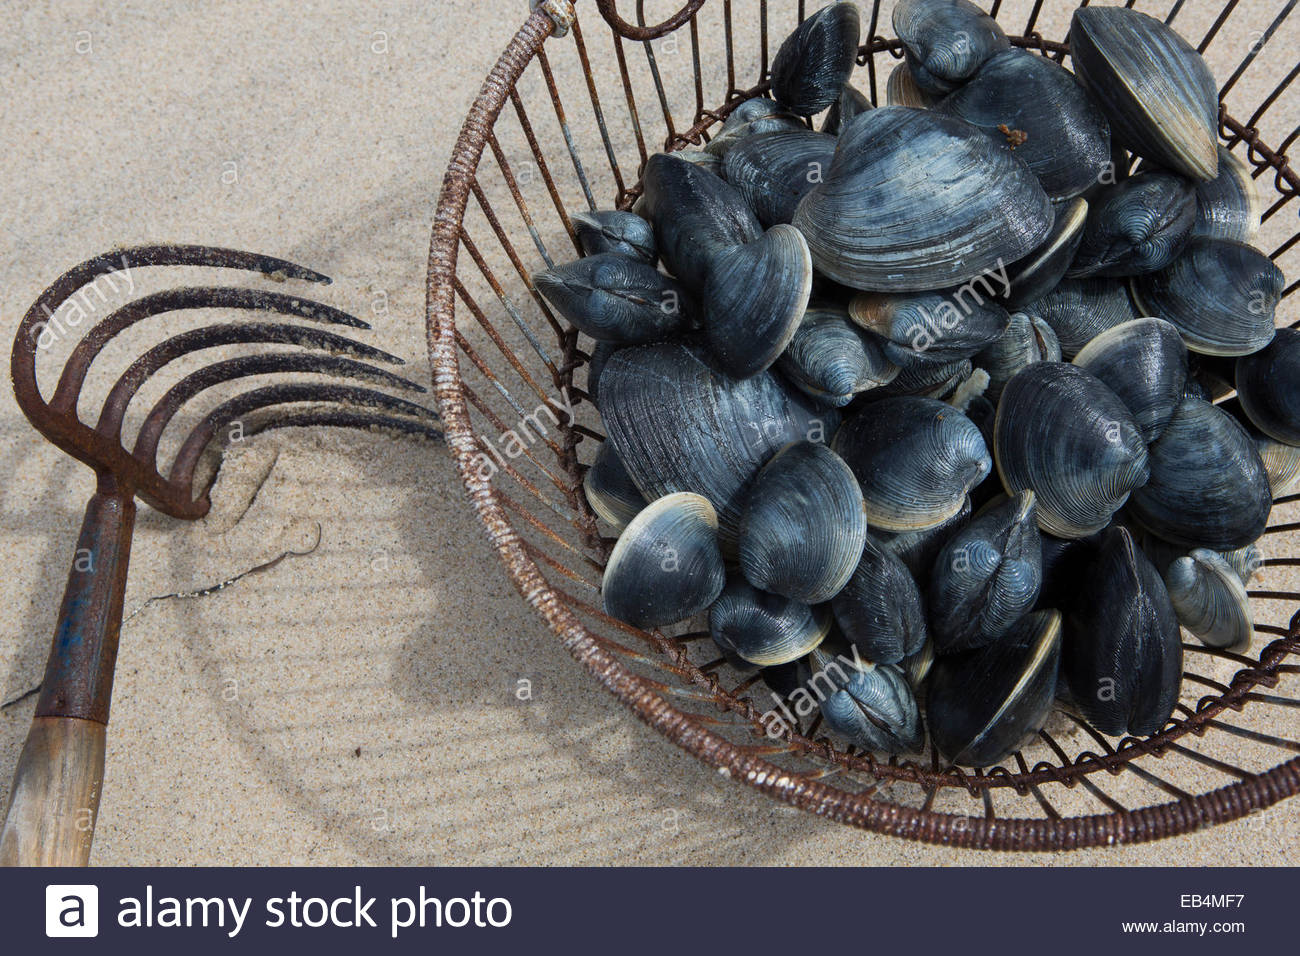 Clam digging at Nauset Beach yields a bucket of quahogs that might turn up later in a local chowder.    Surfers Stock Photo